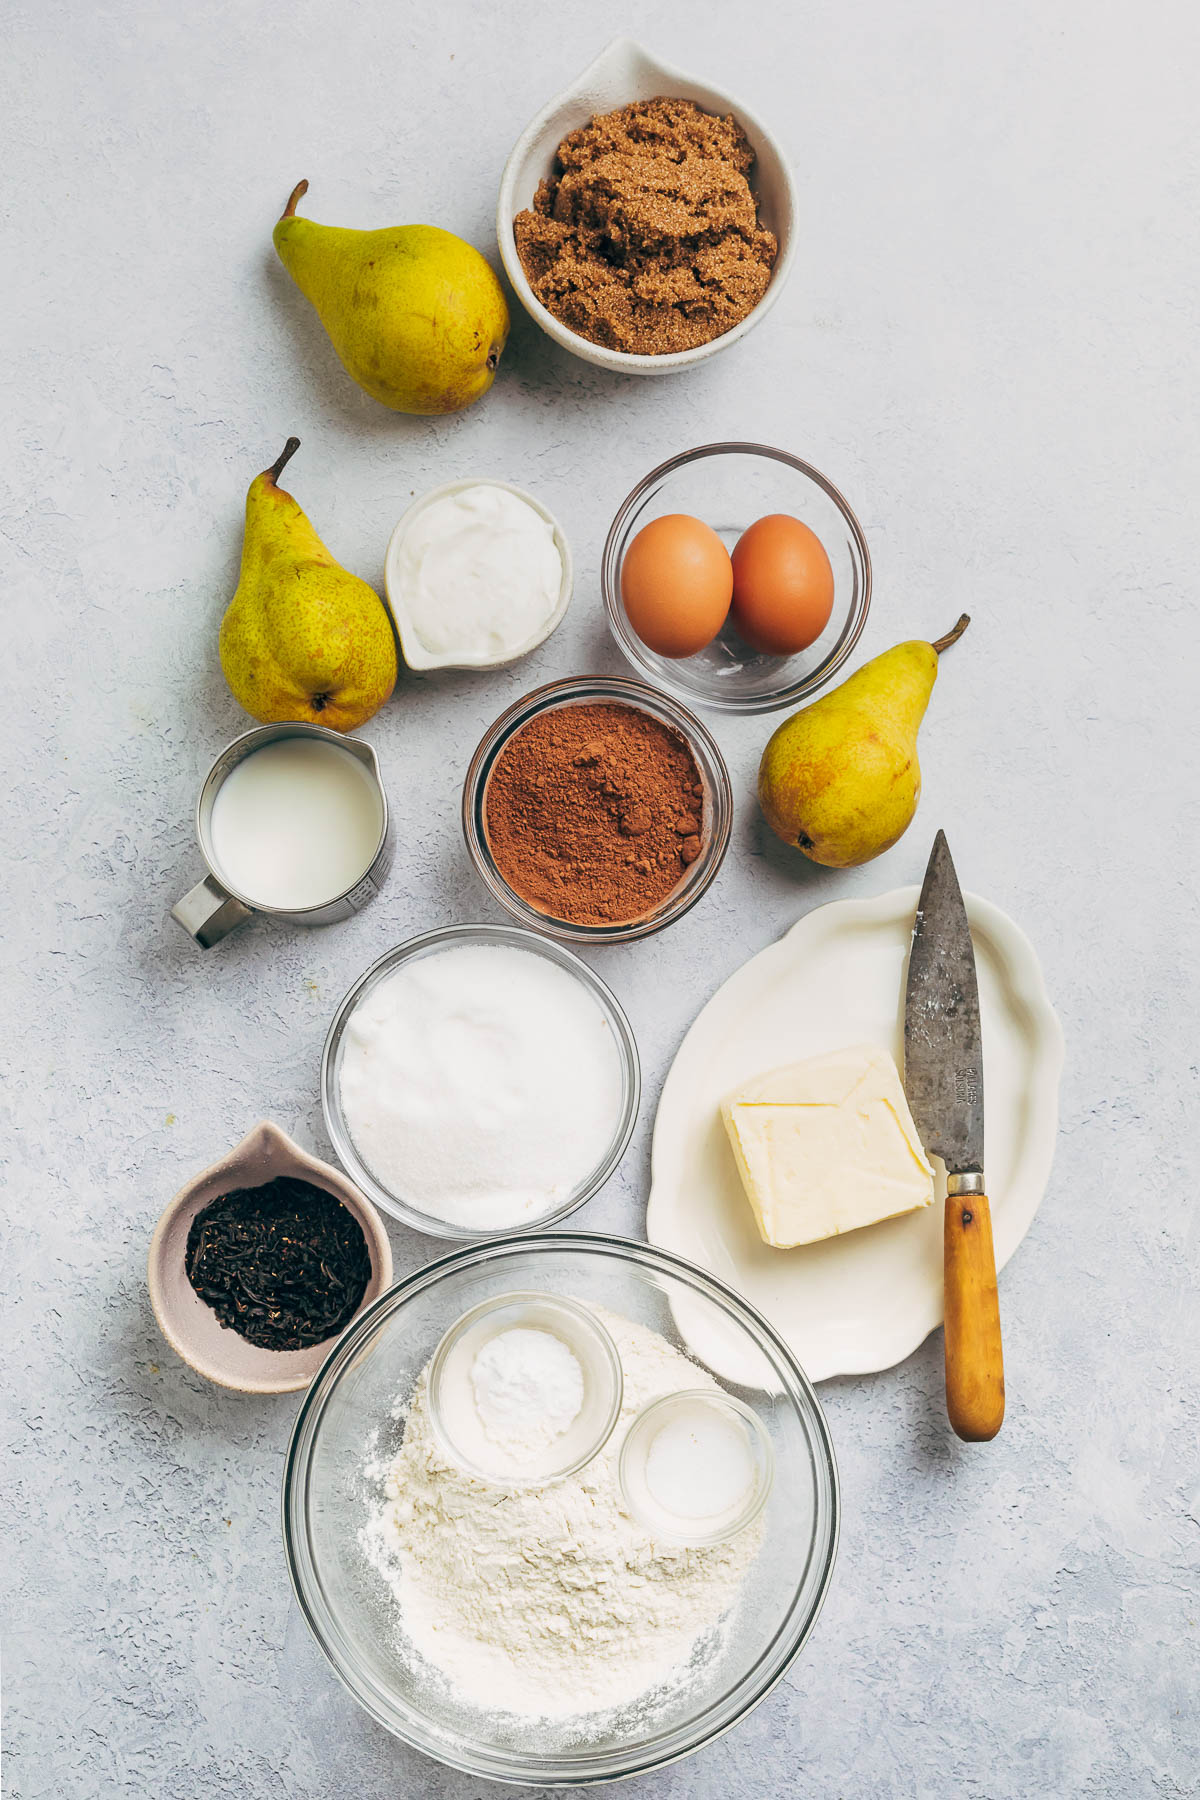 Ingredients to make a chocolate loaf cake with Earl grey-poached pears.